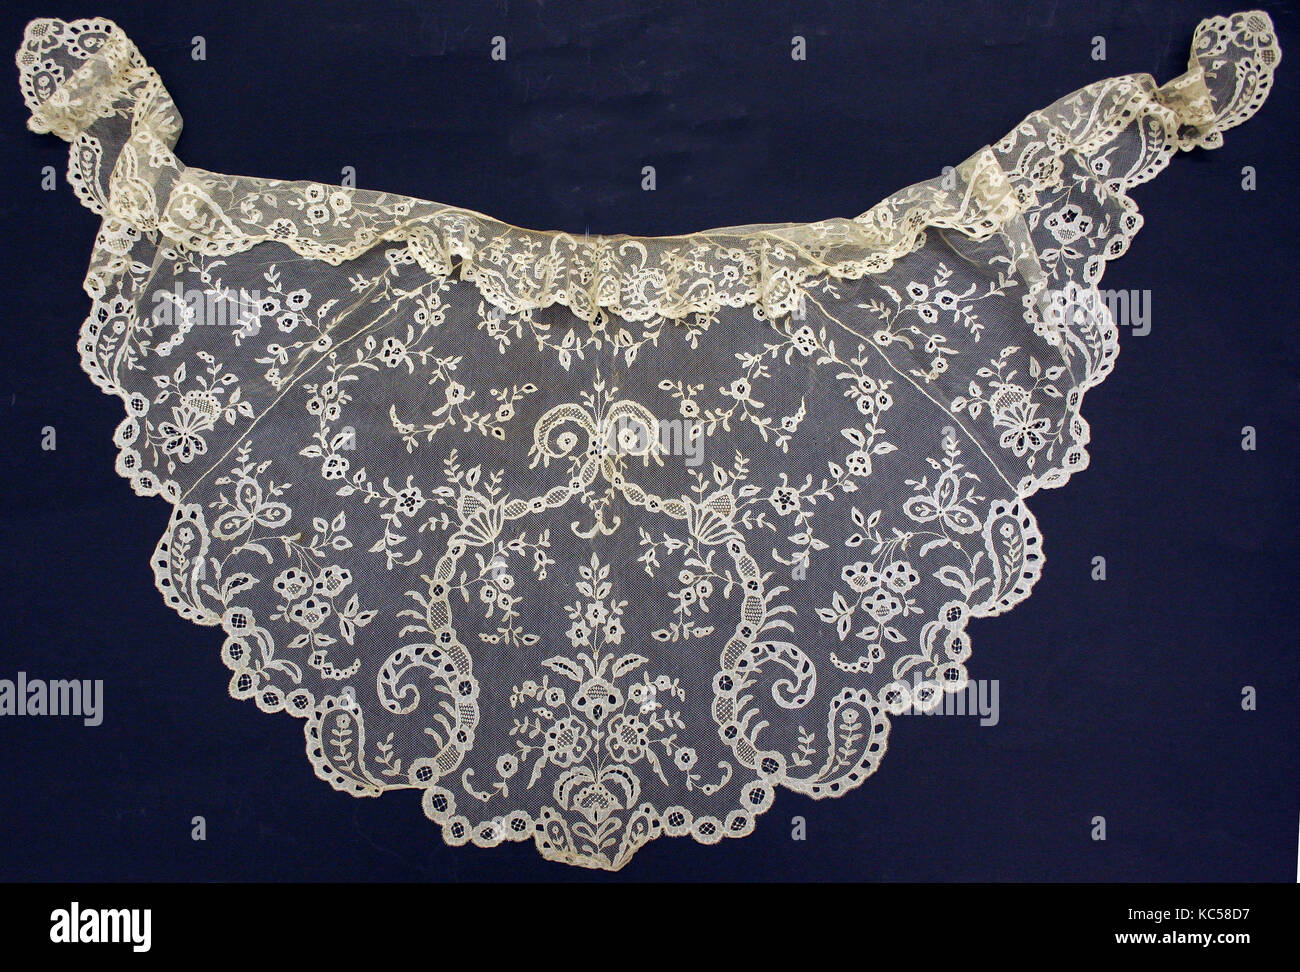 1830s Stock Photos & 1830s Stock Images - Alamy